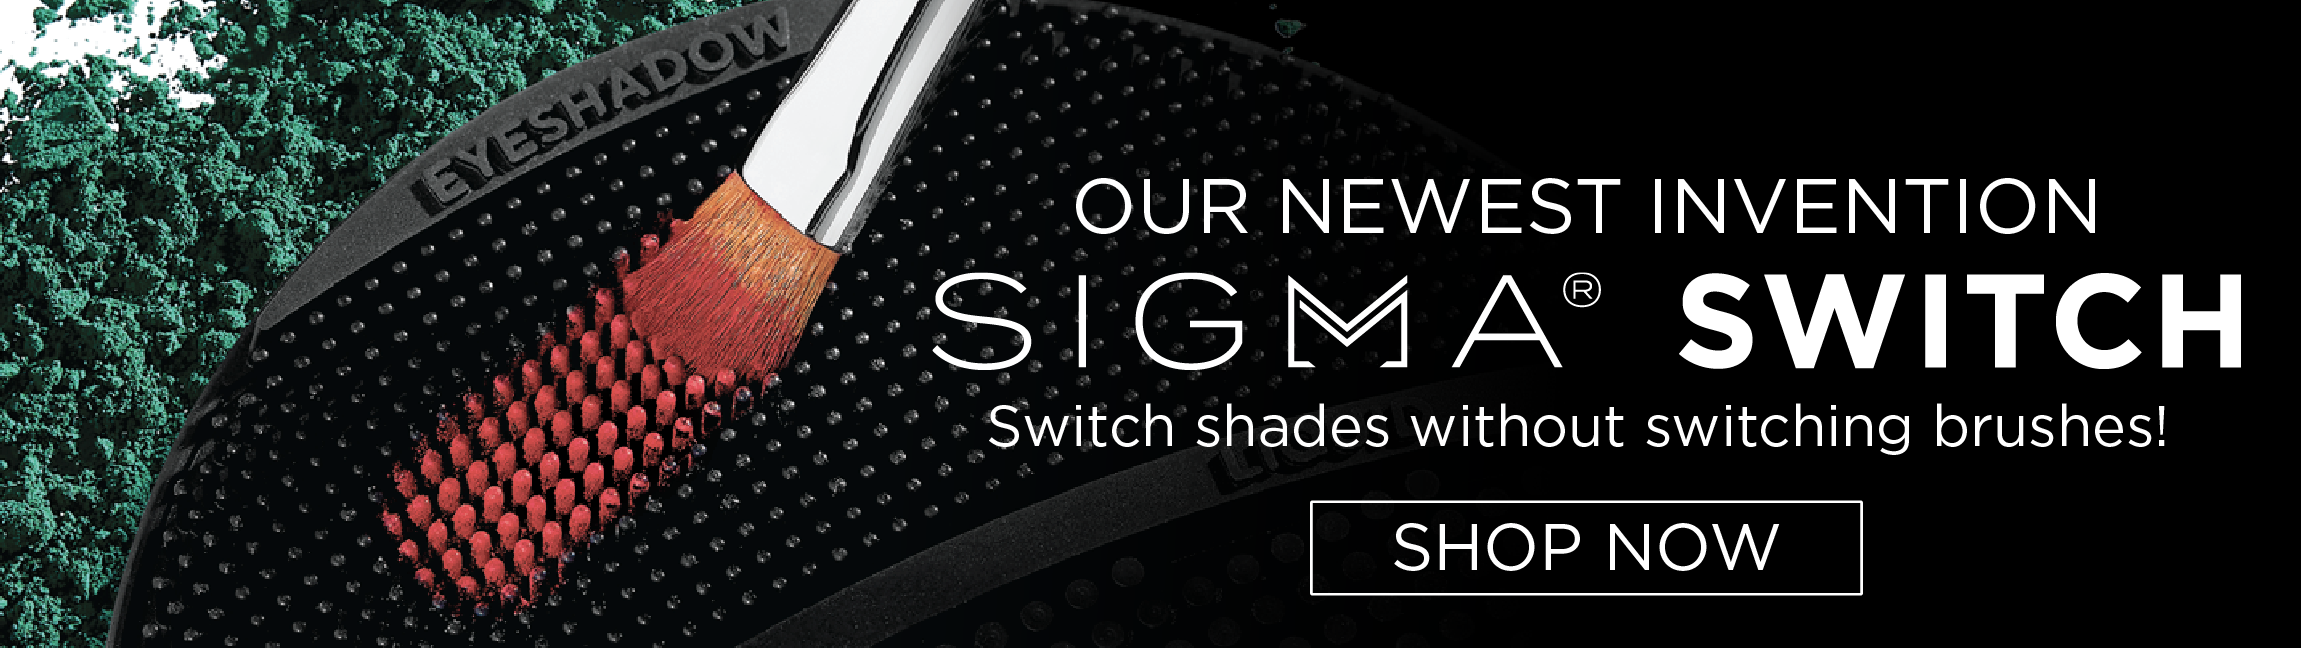 Our Newest Invention | Sigma® Switch | Switch Shades Without Switching Brushes!